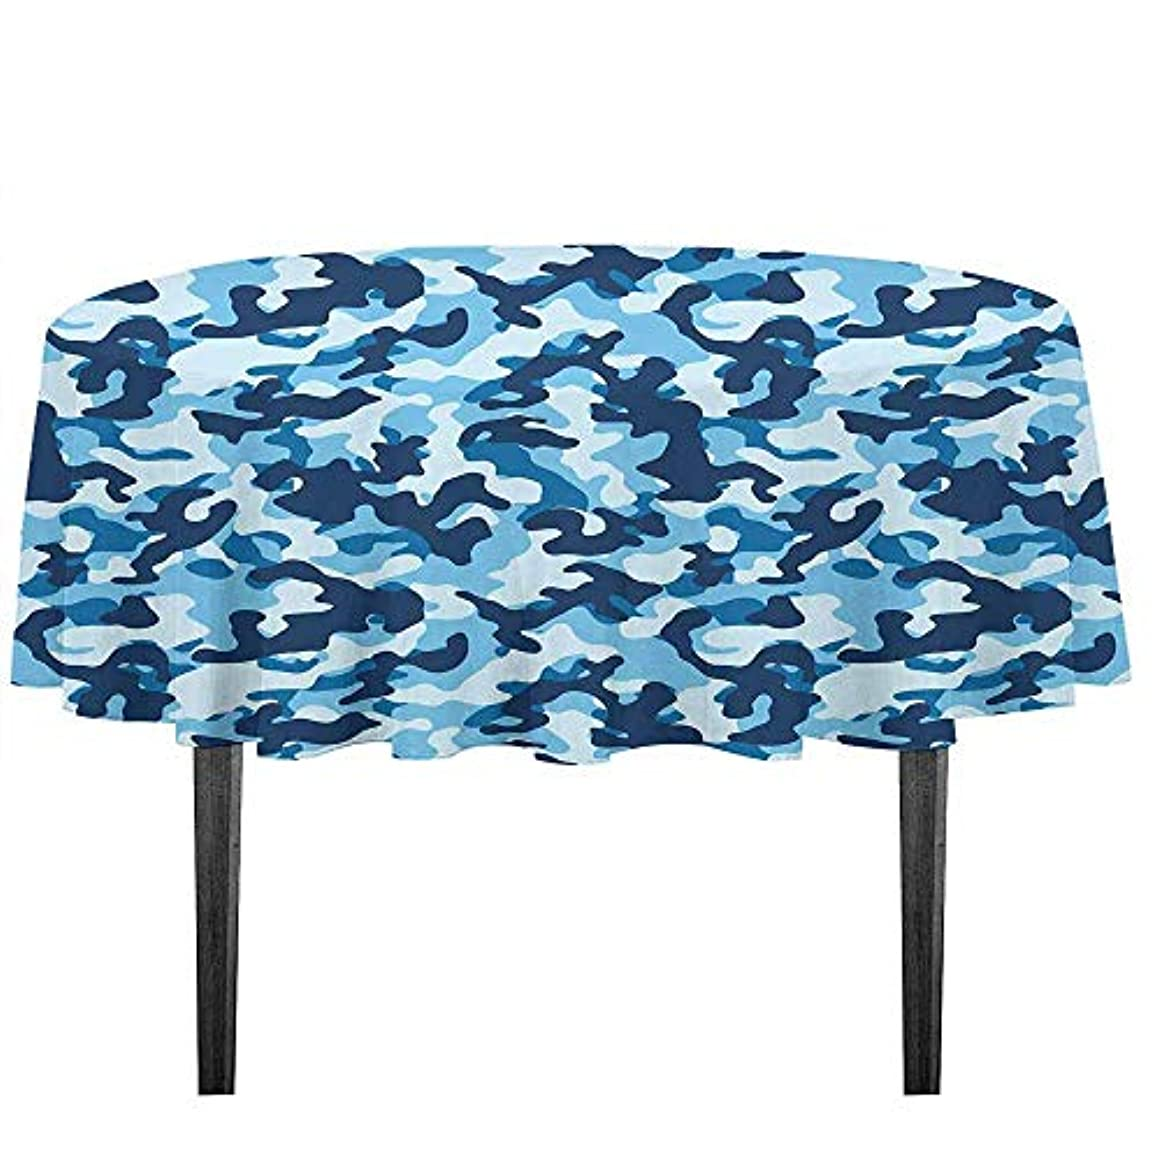 kangkaishi Camouflage Waterproof Anti-Wrinkle no Pollution Costume Pattern with Vibrant Color Palette Abstract Composition Concealment Table Cloth D59.05 Inch Blue Coconut